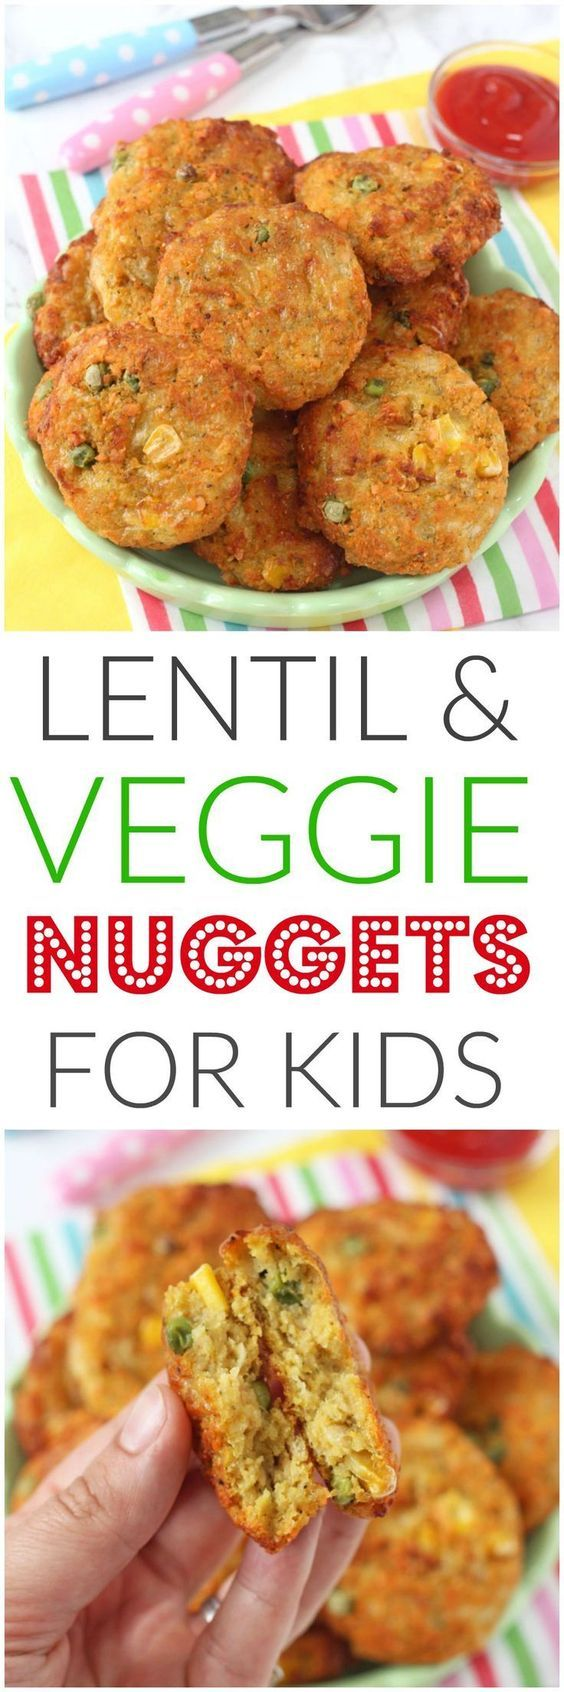 Delicious veggie nuggets packed with lentils. These make brilliant finger foods for kids, toddlers and weaning babies too. Super healthy and so easy to make!